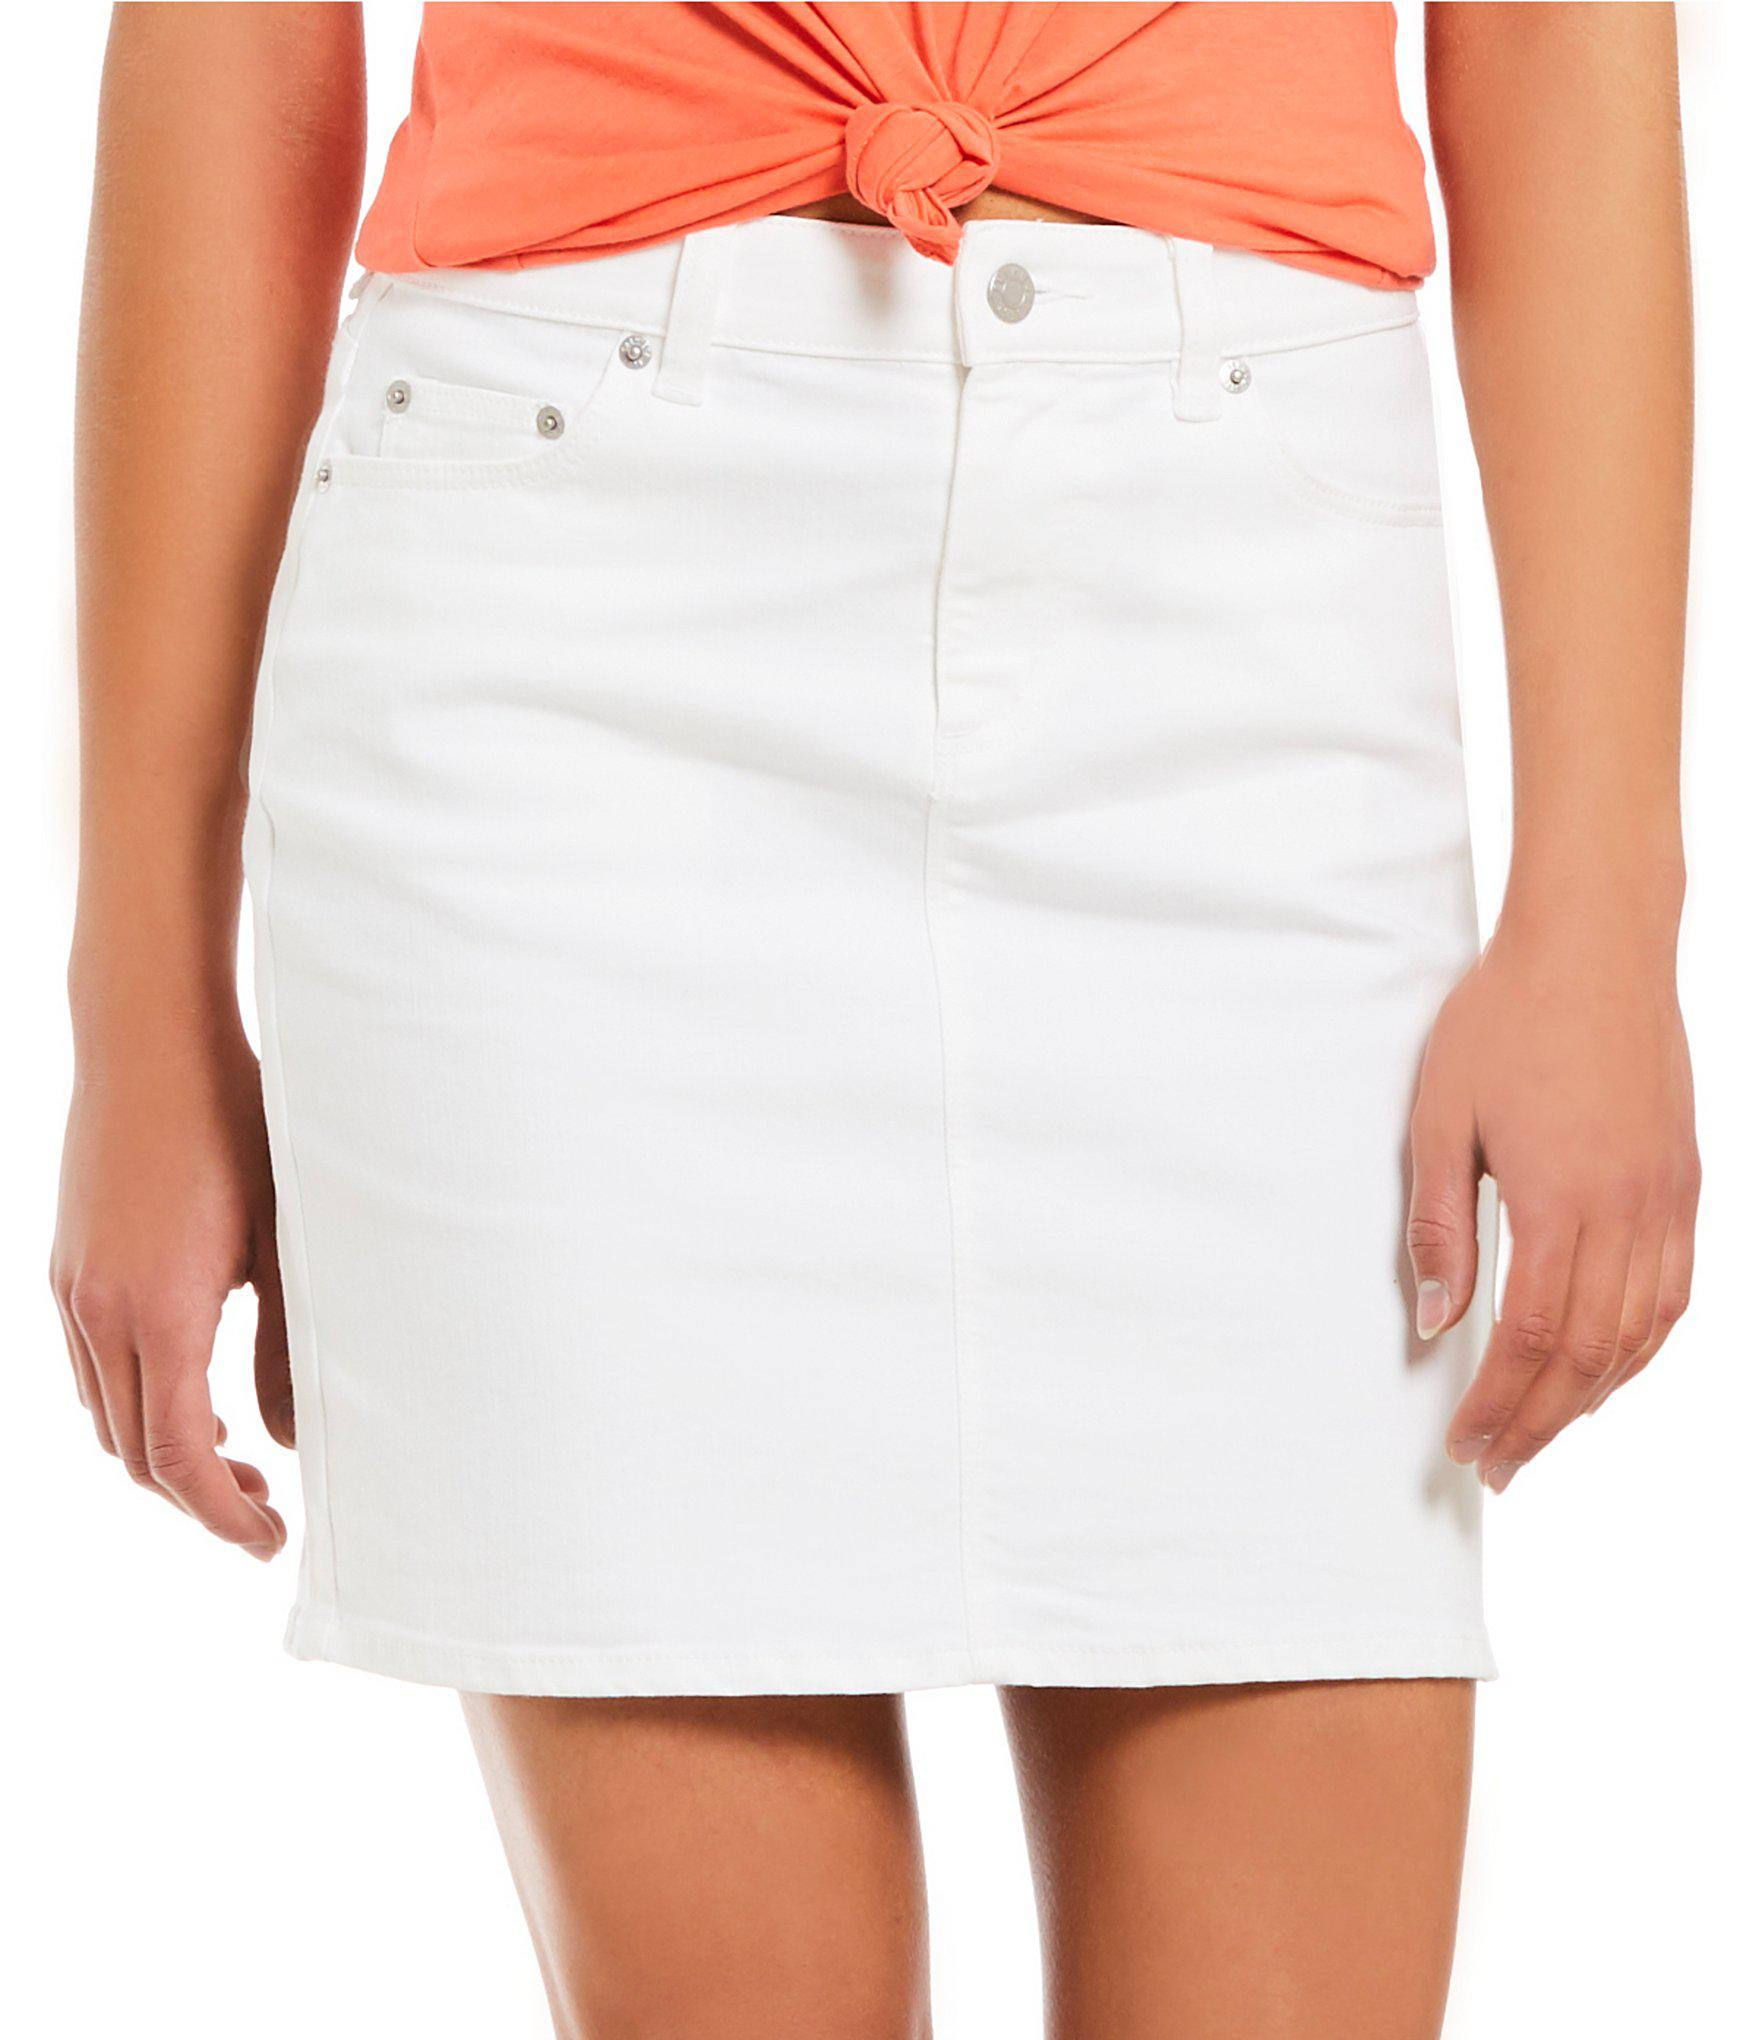 7496a33543e1 Cremieux Bethany Denim Skirt in White - Lyst